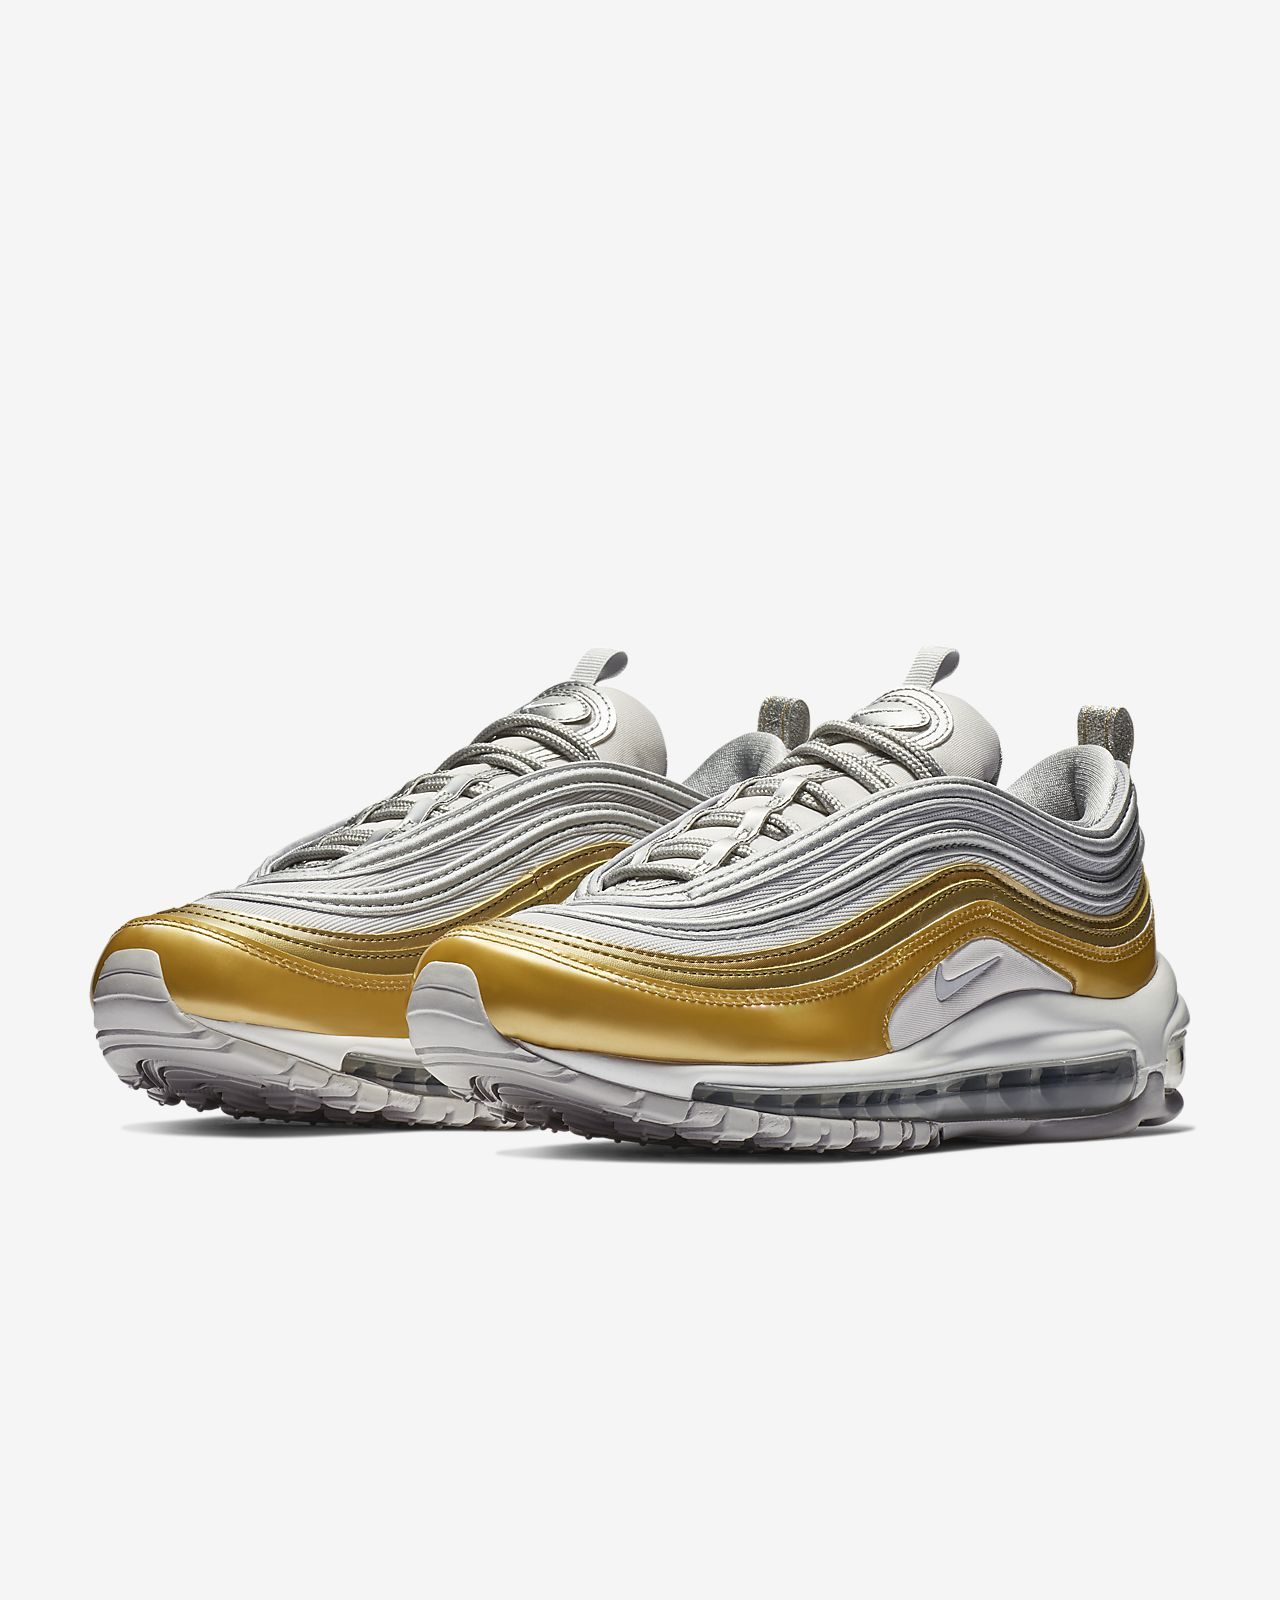 5204043dba Nike Air Max 97 SE Metallic Women's Shoe. Nike.com AU